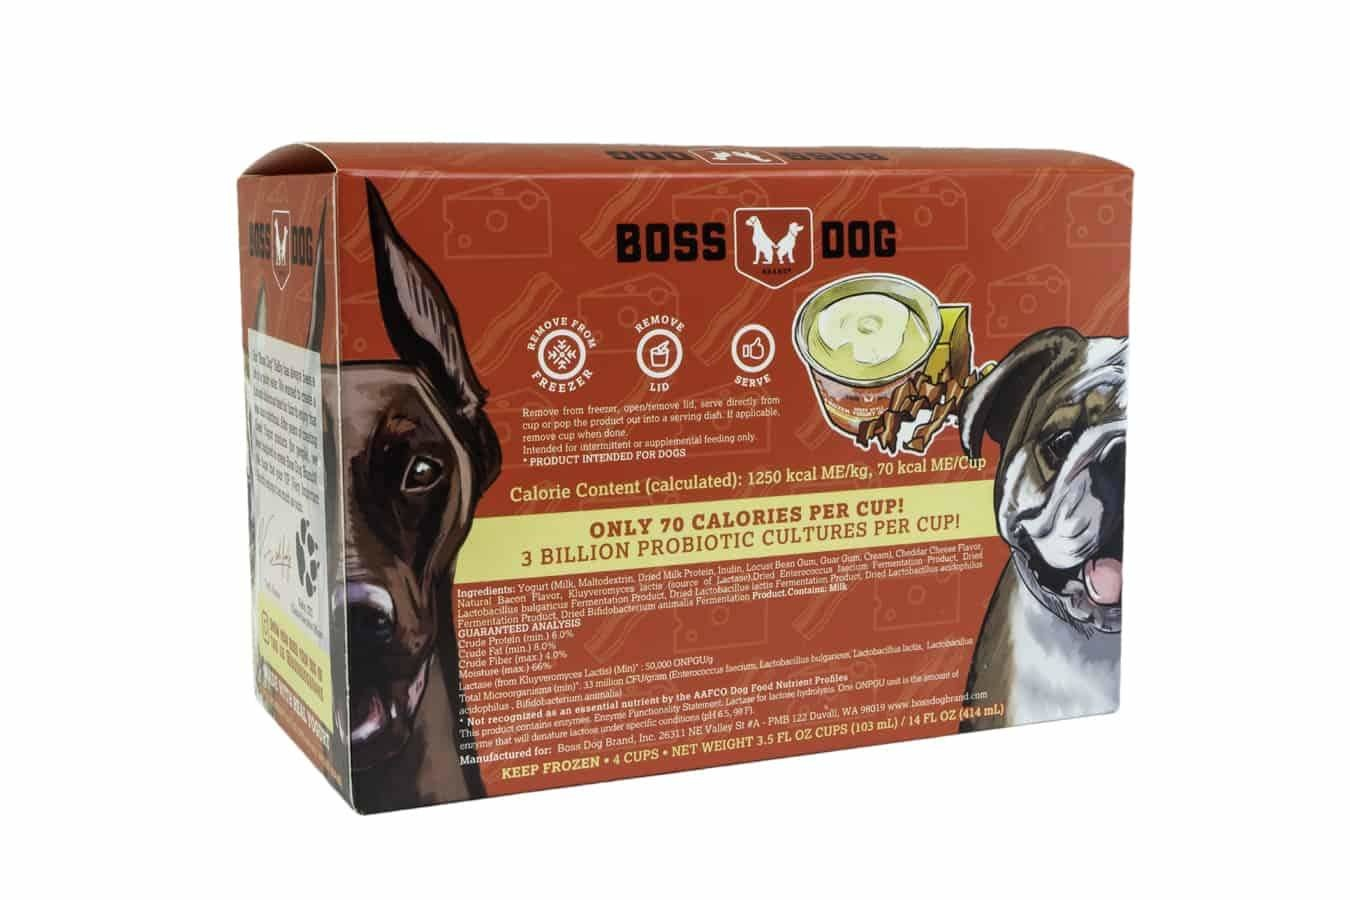 Boss Dog Boss Dog Frozen Yogurt Bacon Cheddar Box